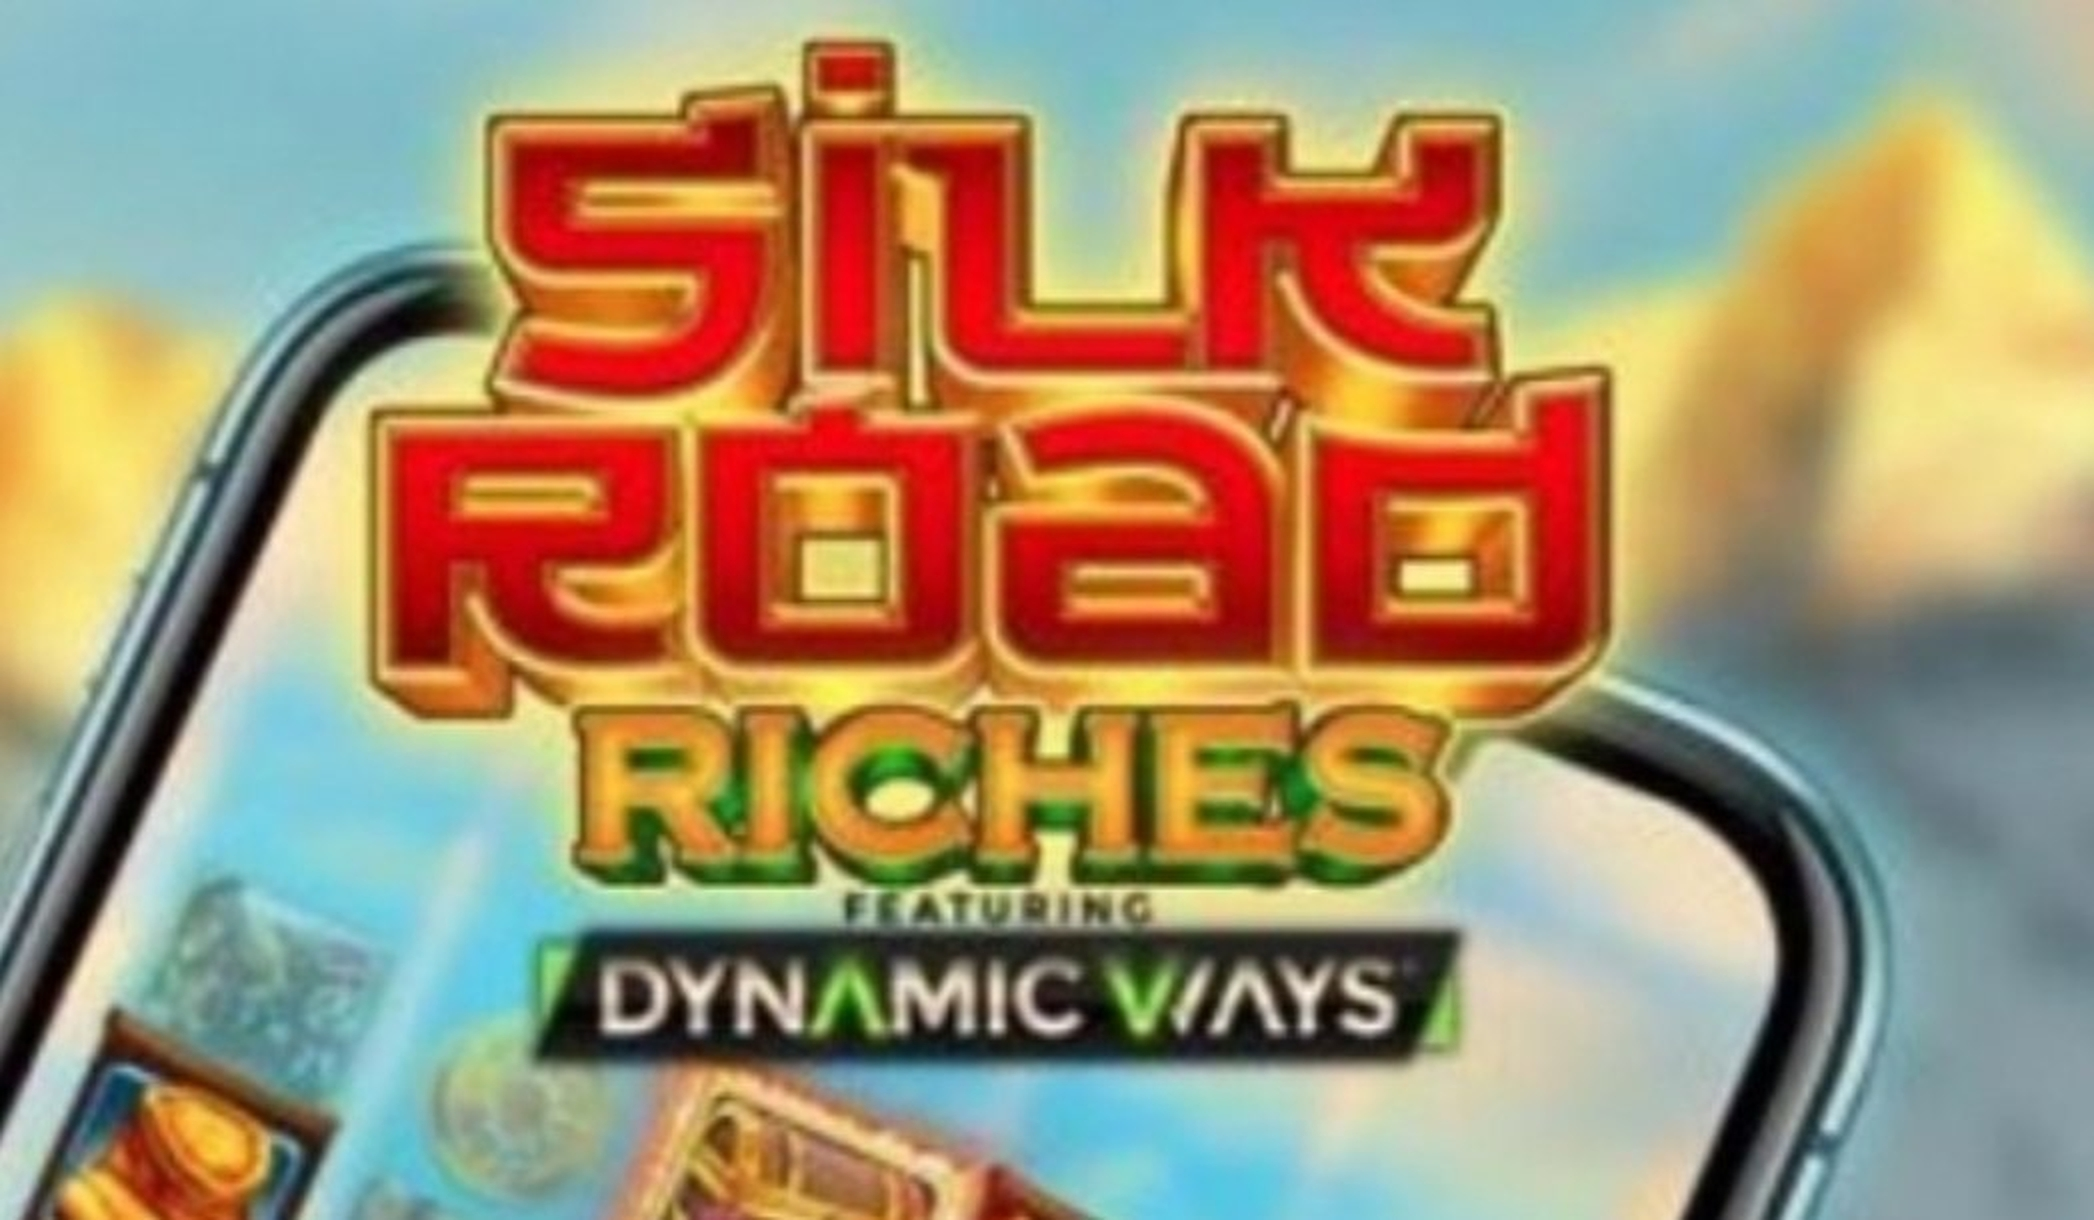 The Silk Road Riches Online Slot Demo Game by Leander Games